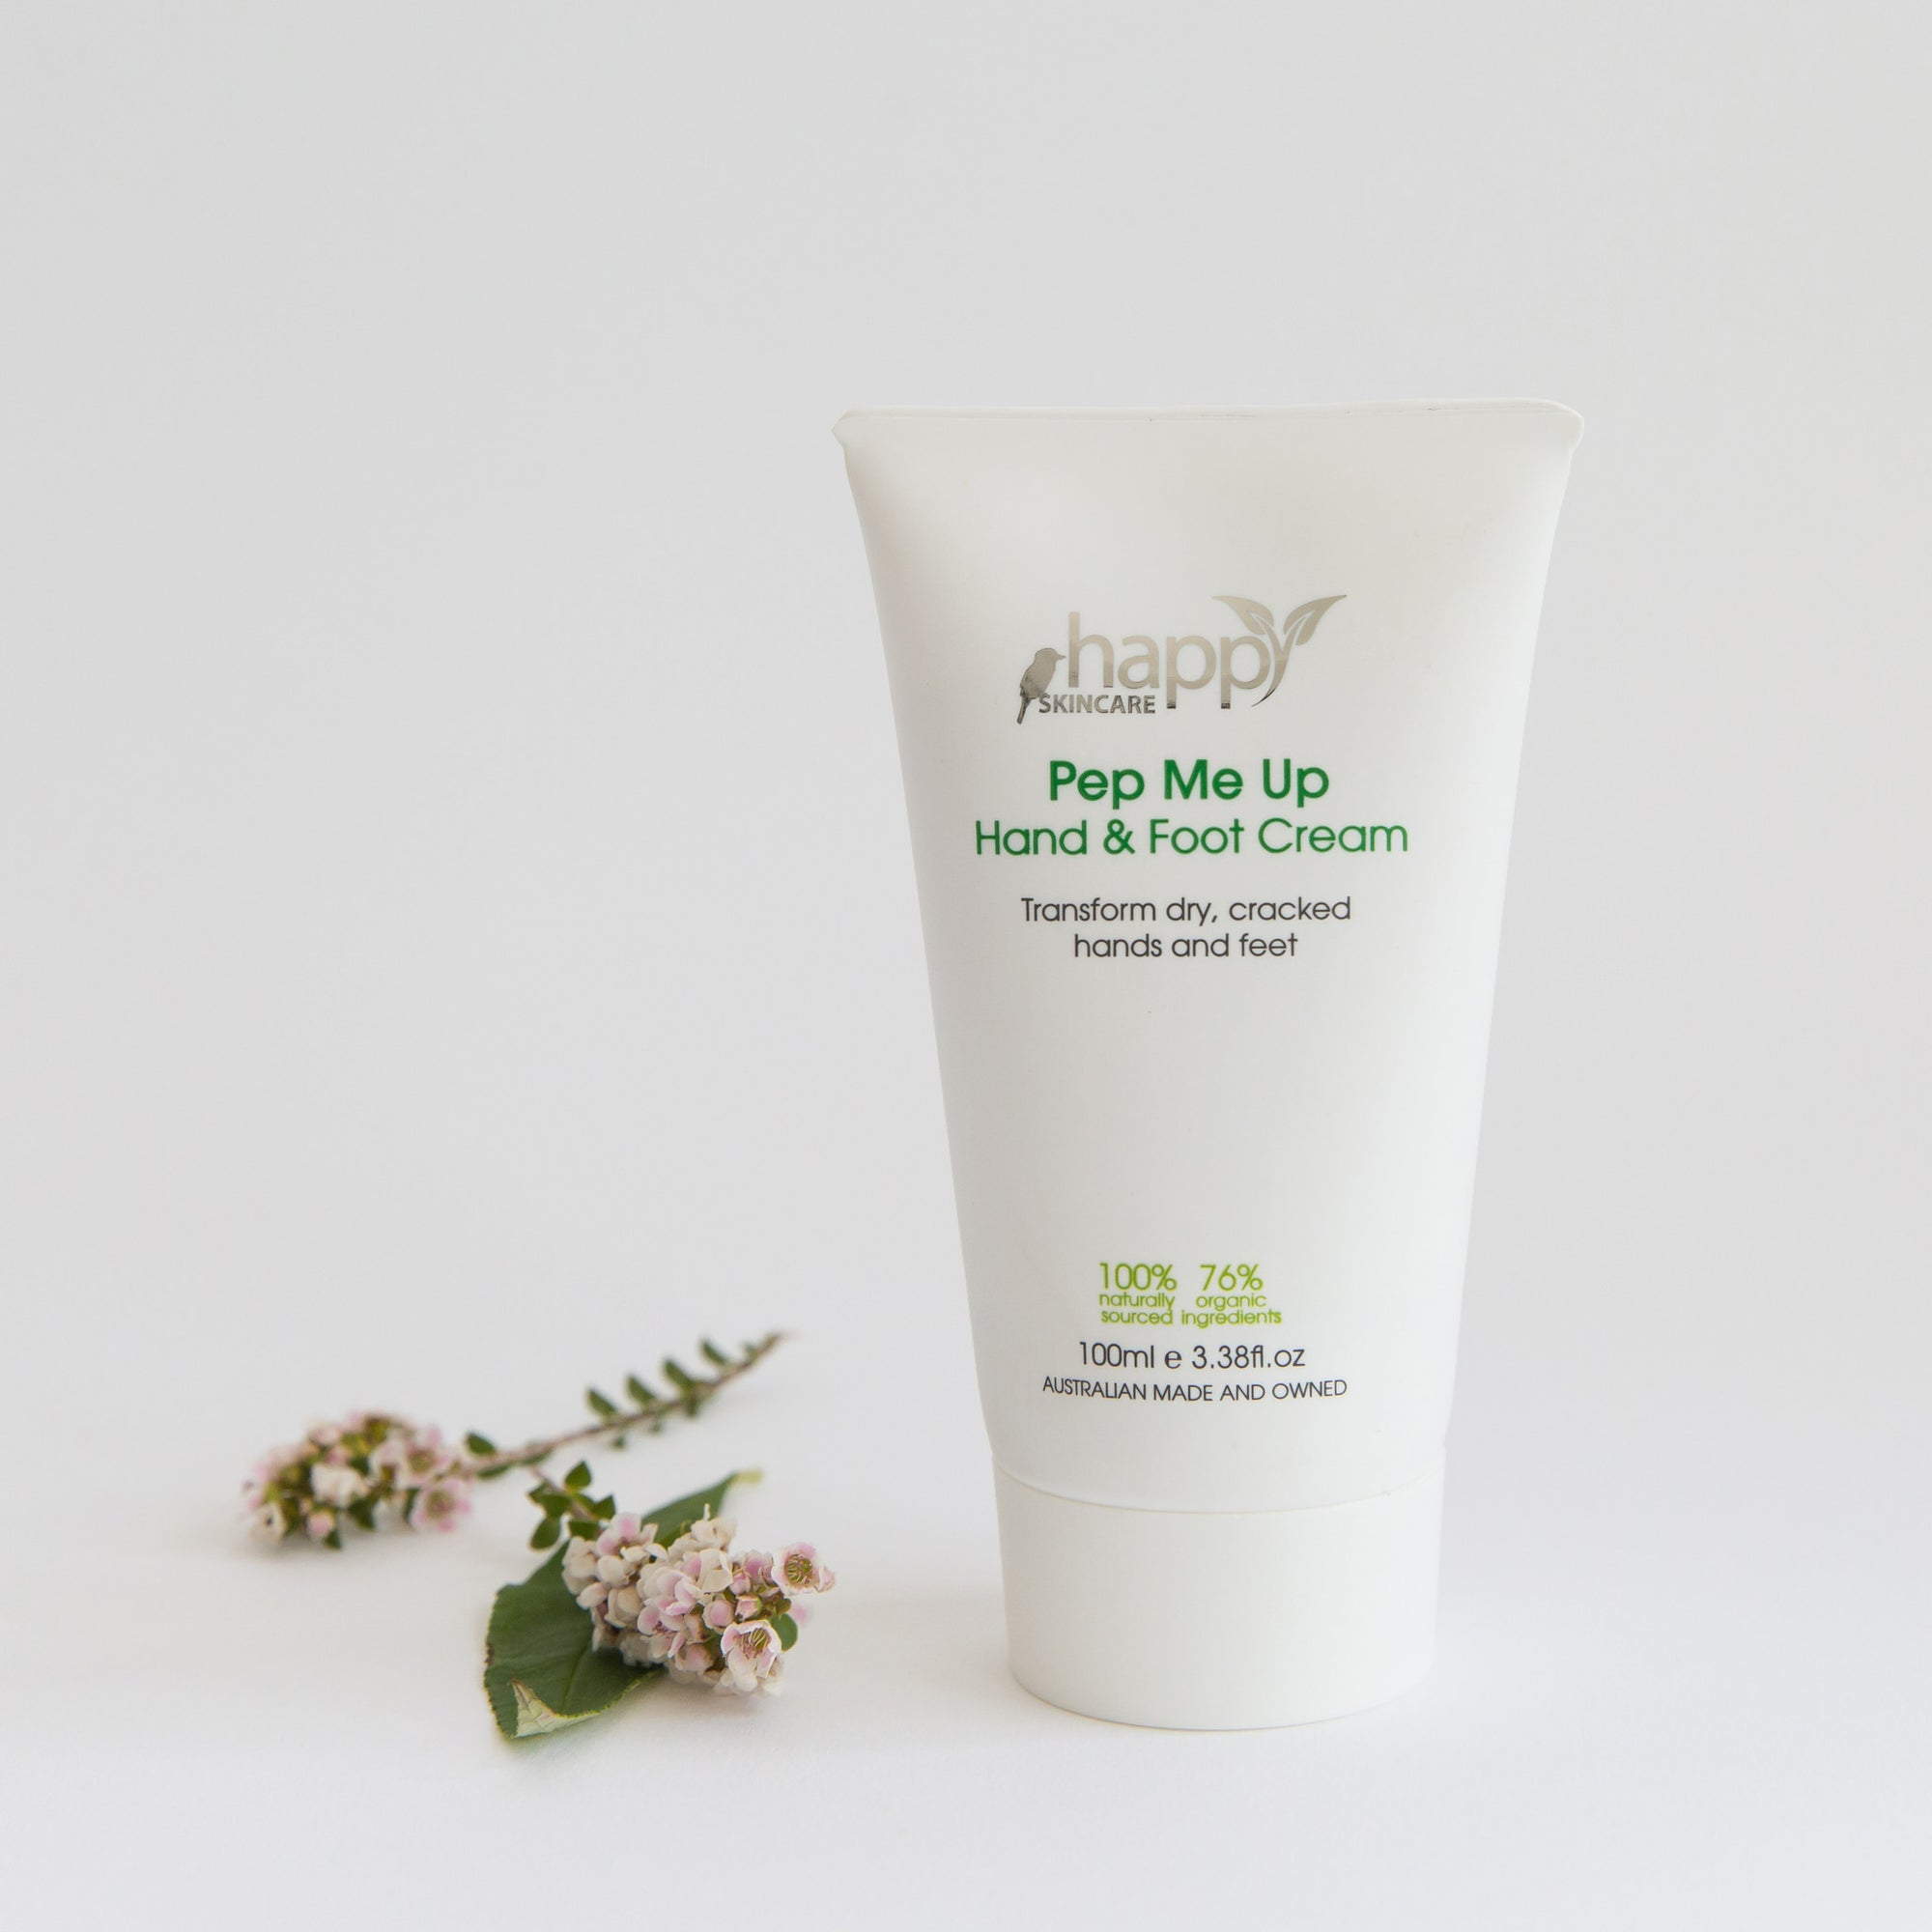 'Pep Me Up' Hand and Foot Cream